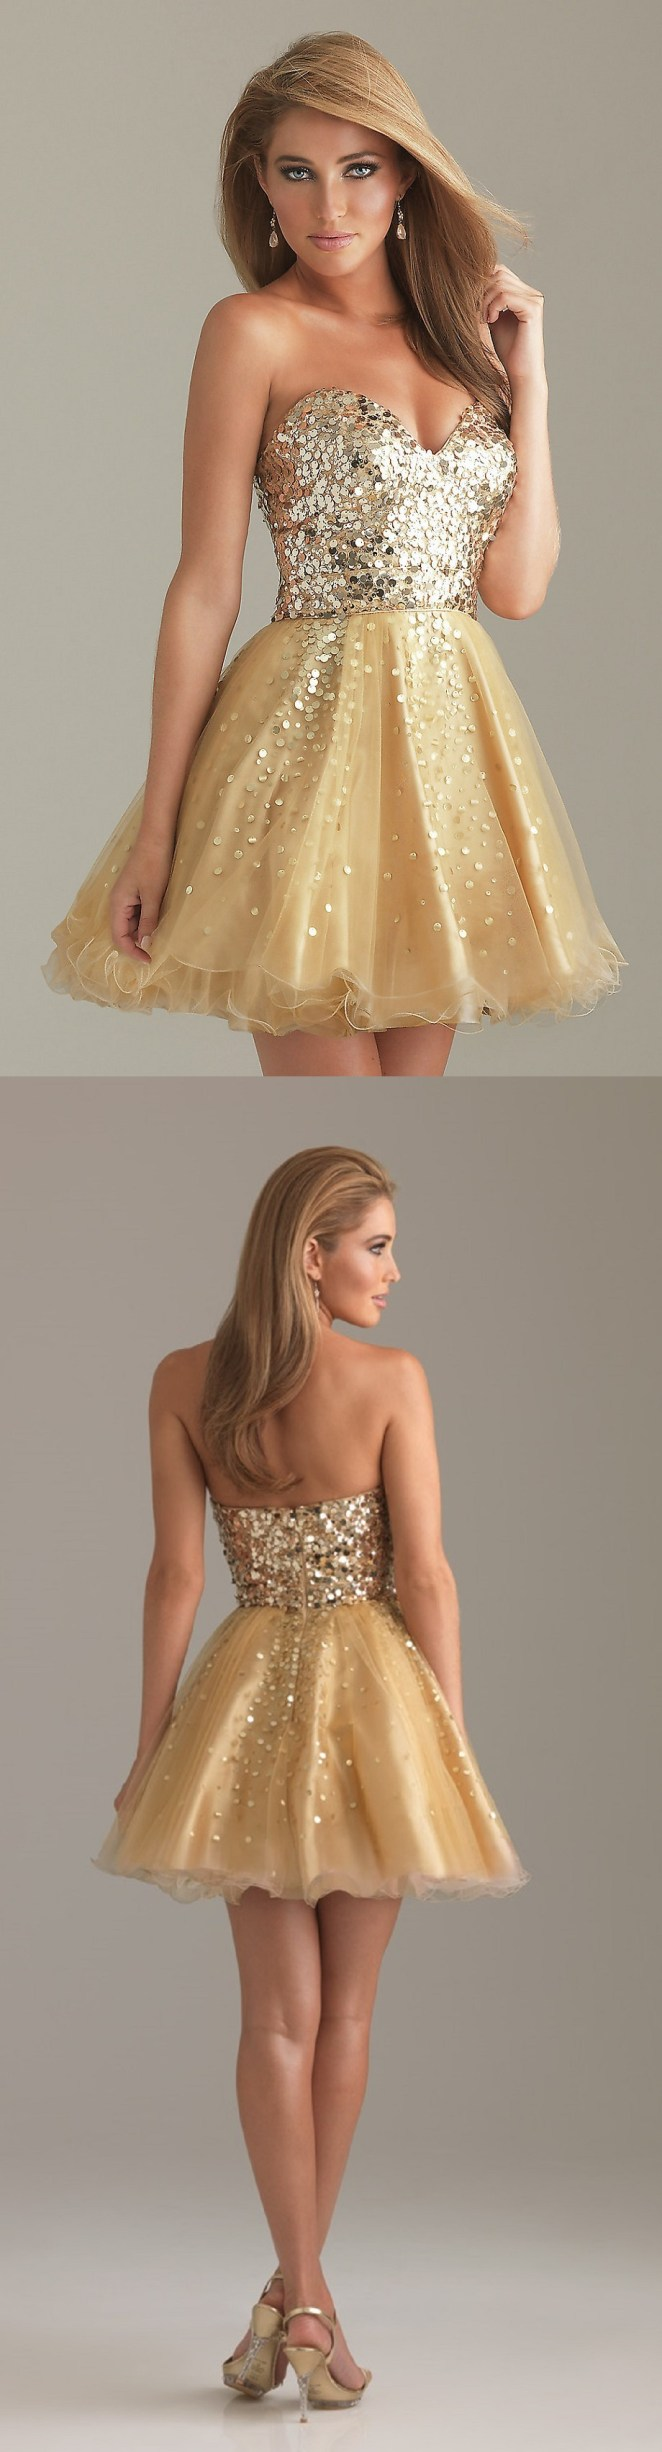 Mesmerizing Gold Dress for you all party girls1.10